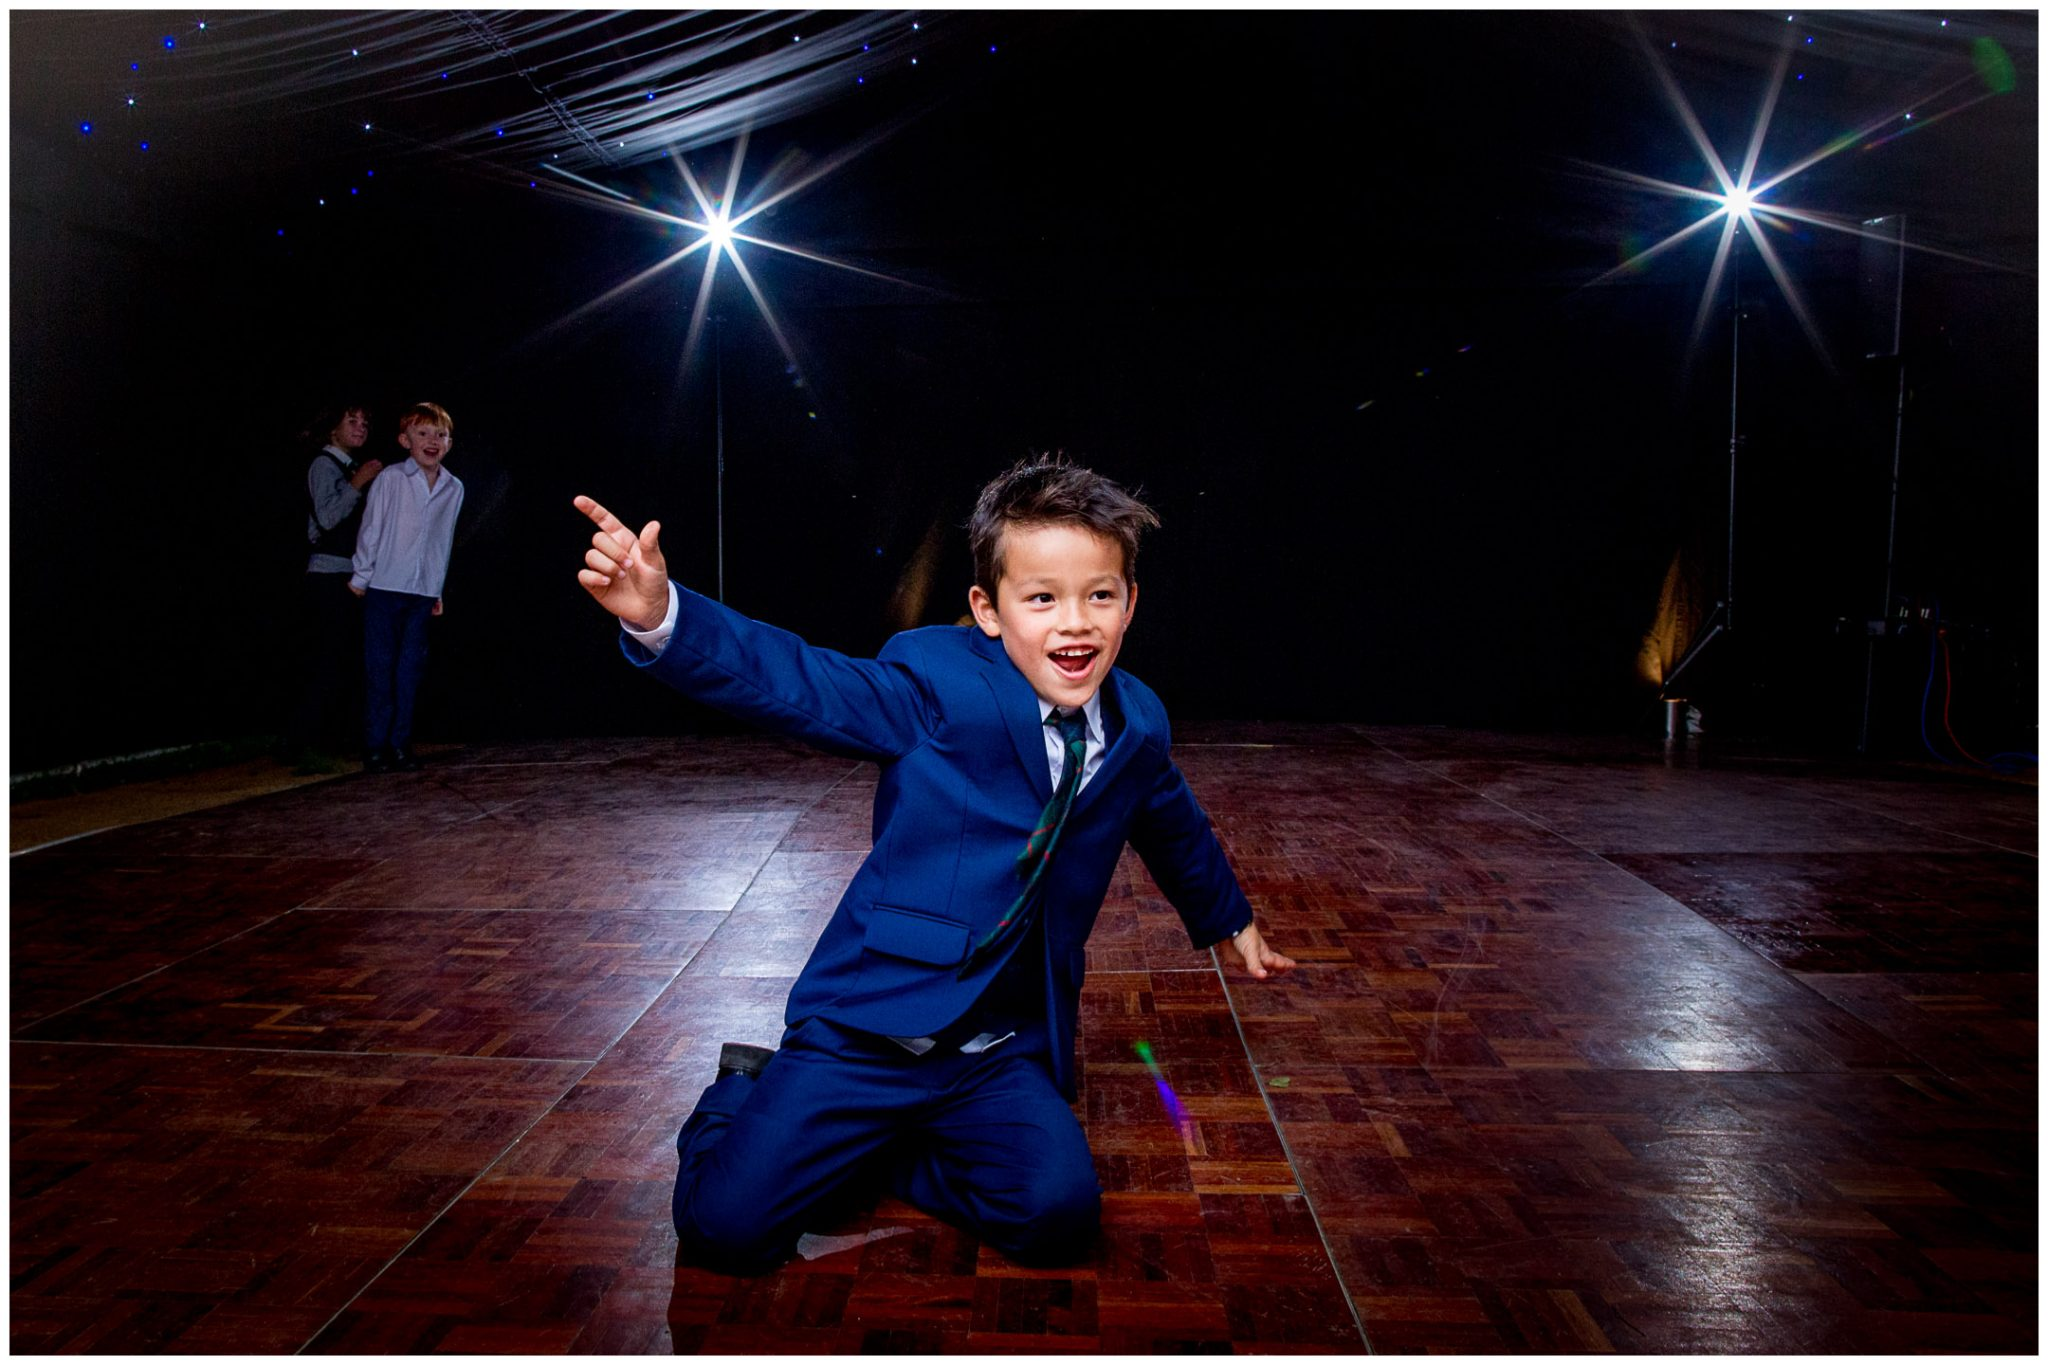 Kids and dancefloors